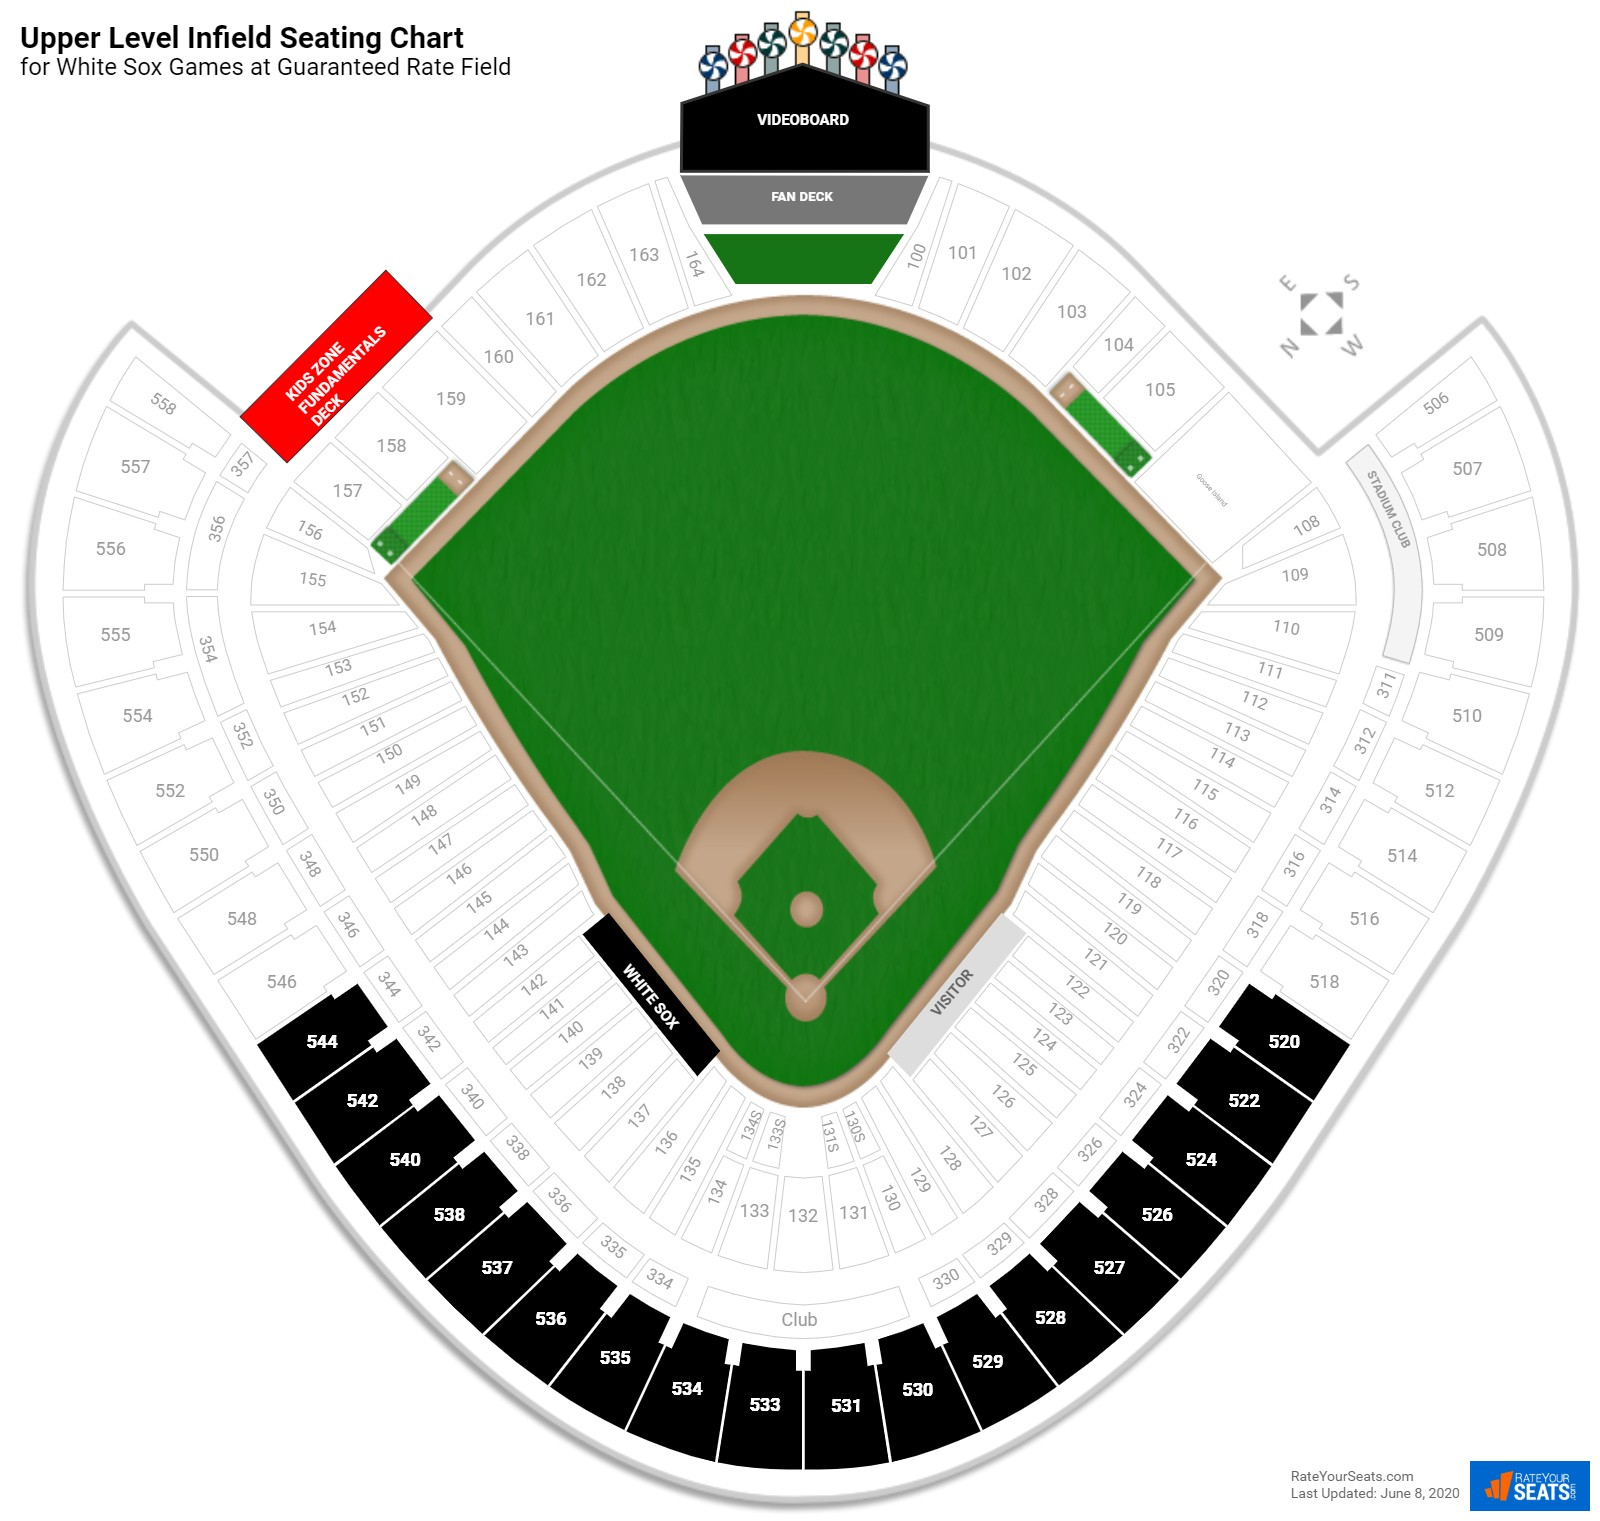 U.S. Cellular Field Upper Level Infield seating chart